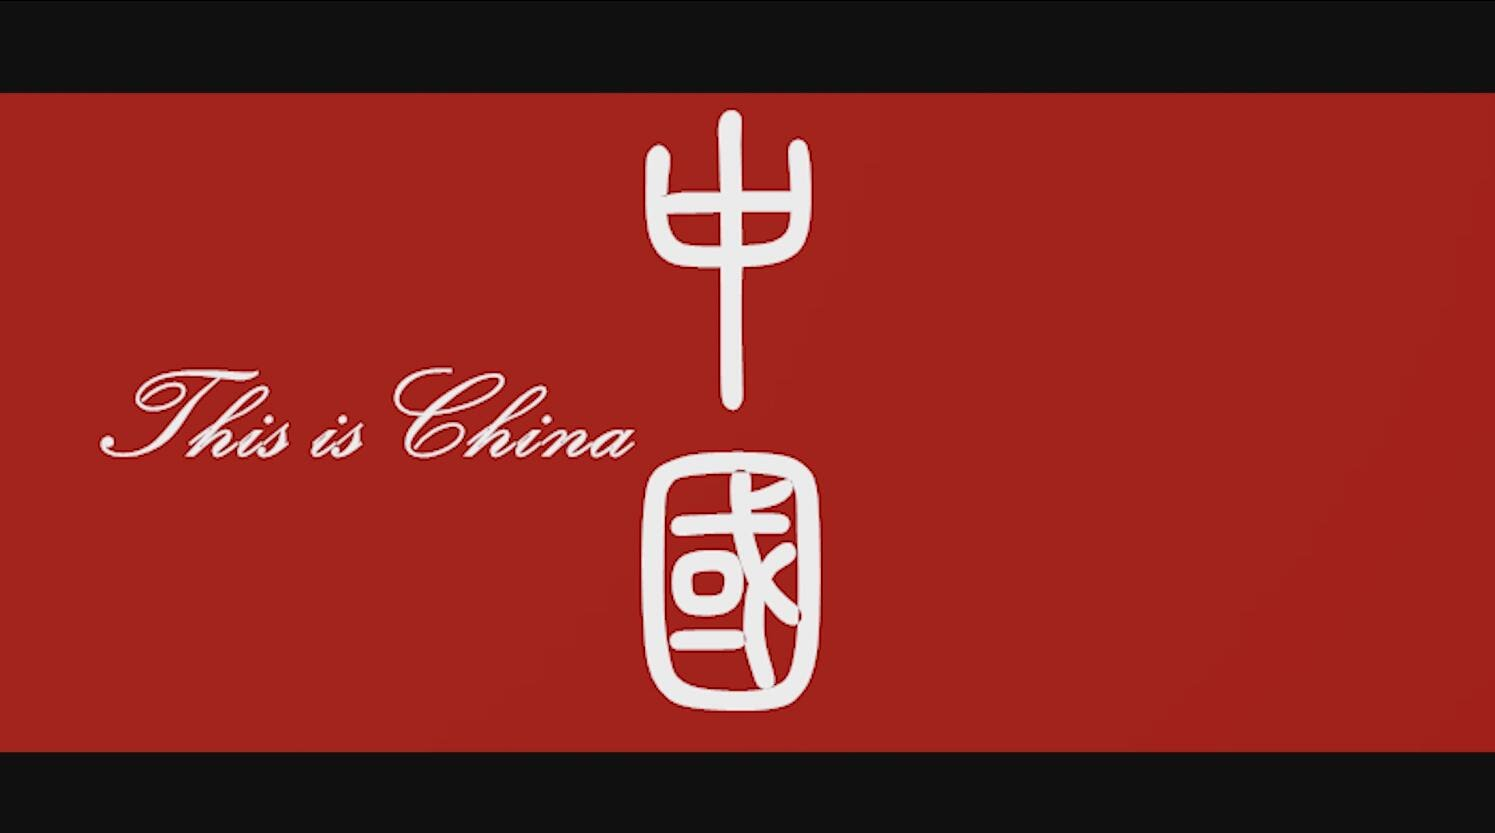 Video: This is China